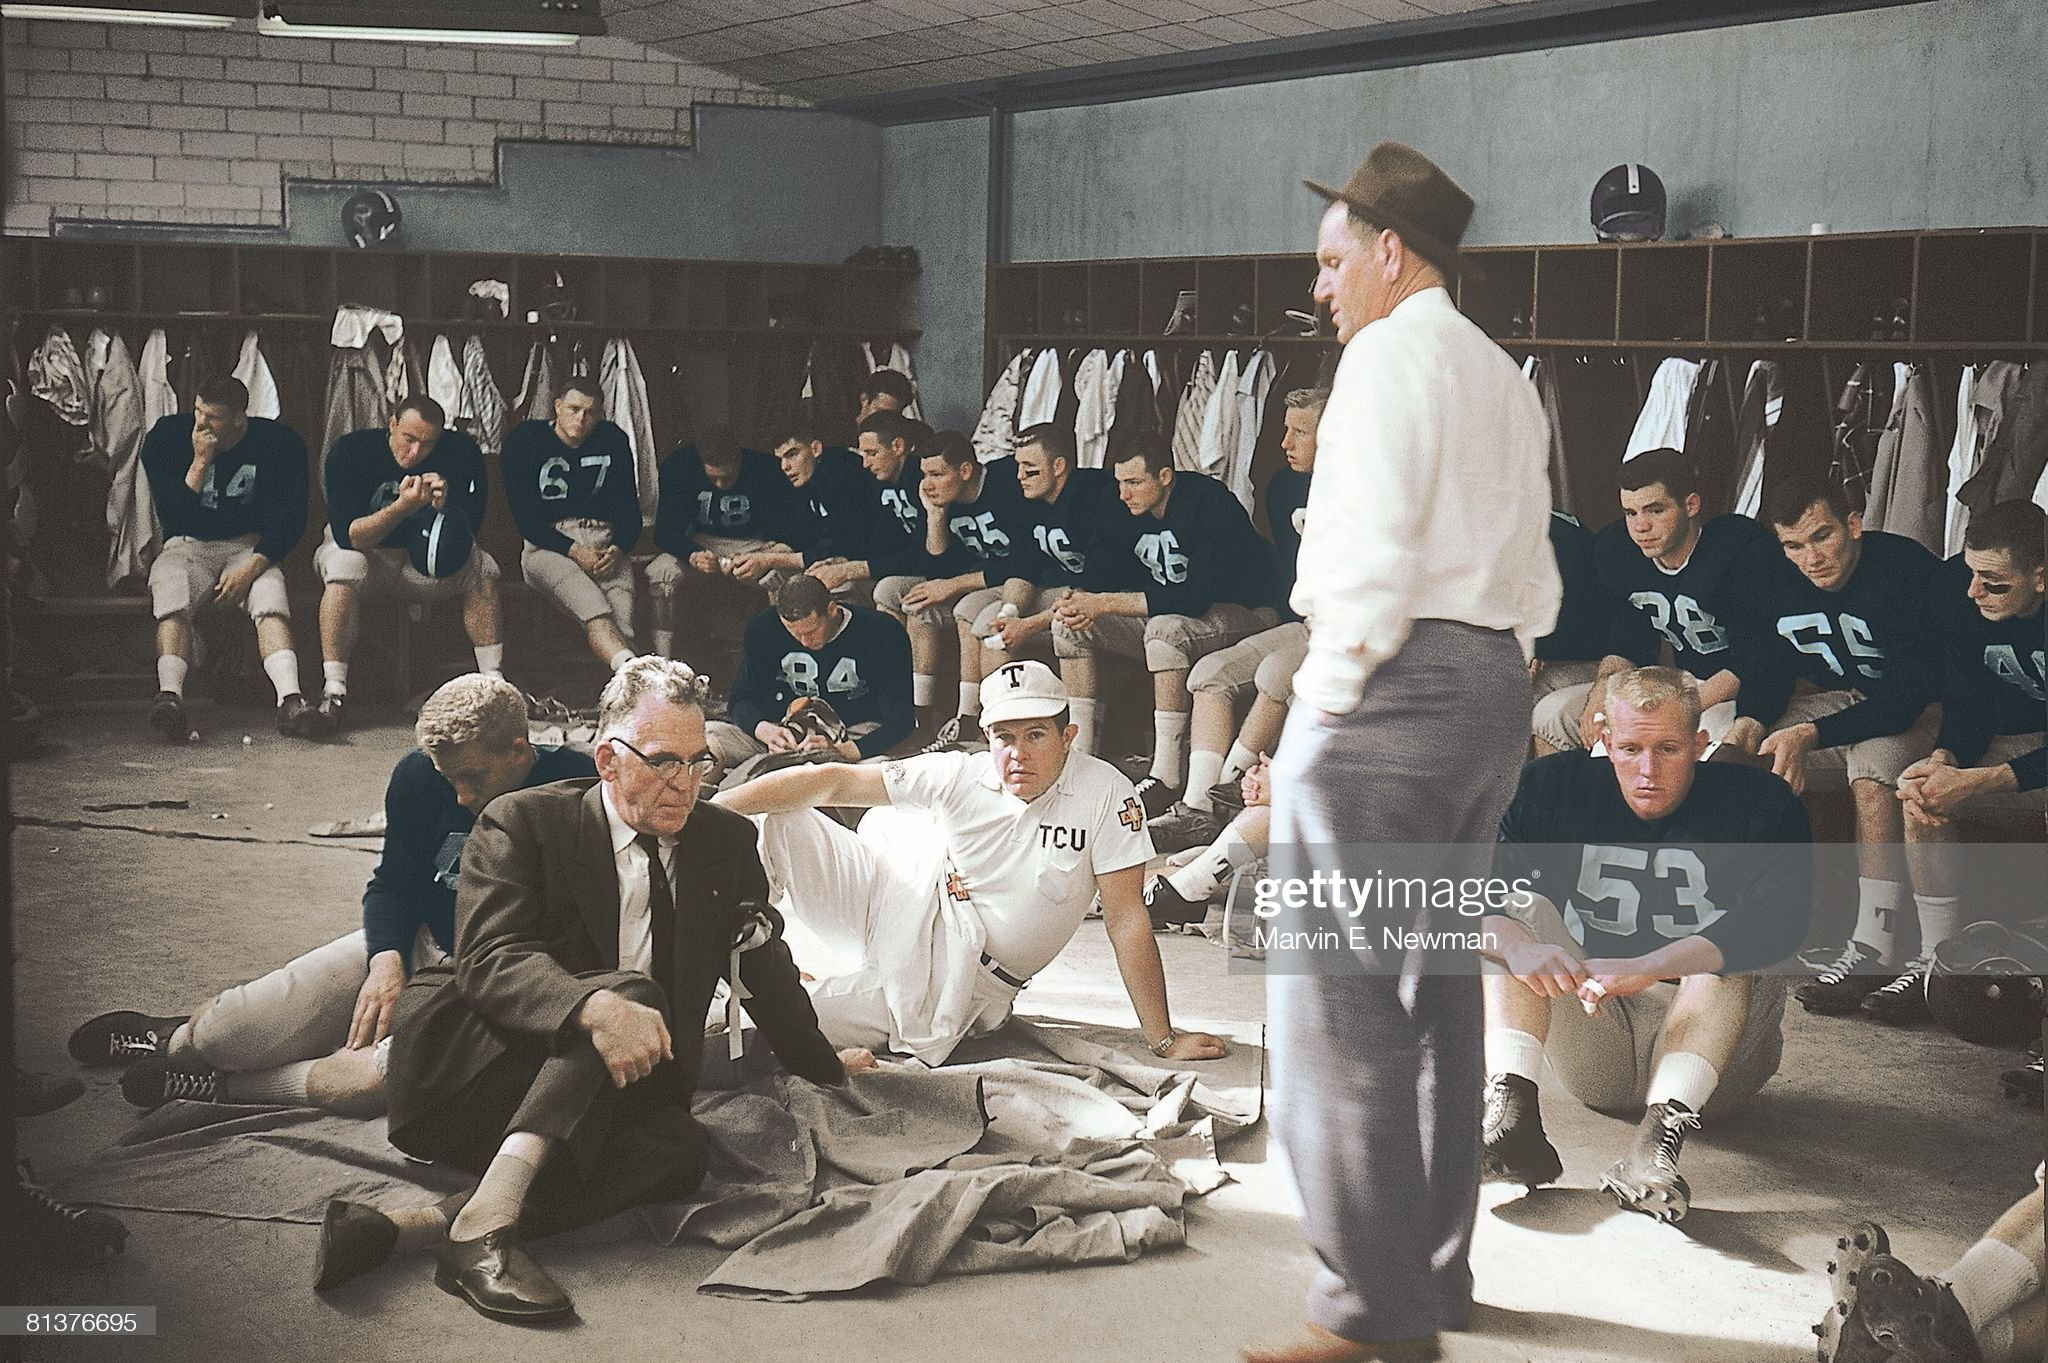 college-football-cotton-bowl-tcu-coach-othal-abe-martin-with-team-in-picture-id81376695